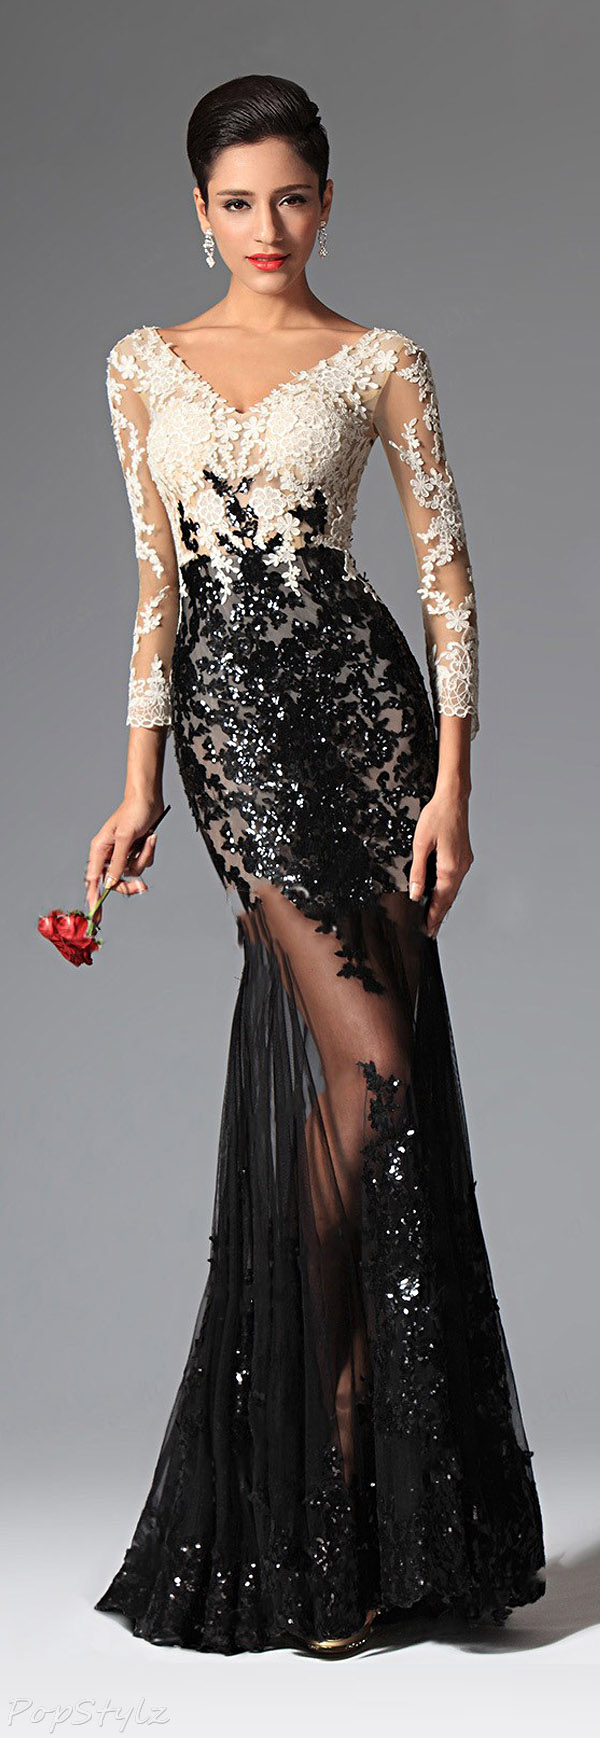 eDressit 02149100 Sequin Tulle & Lace Sleeves Evening Gown